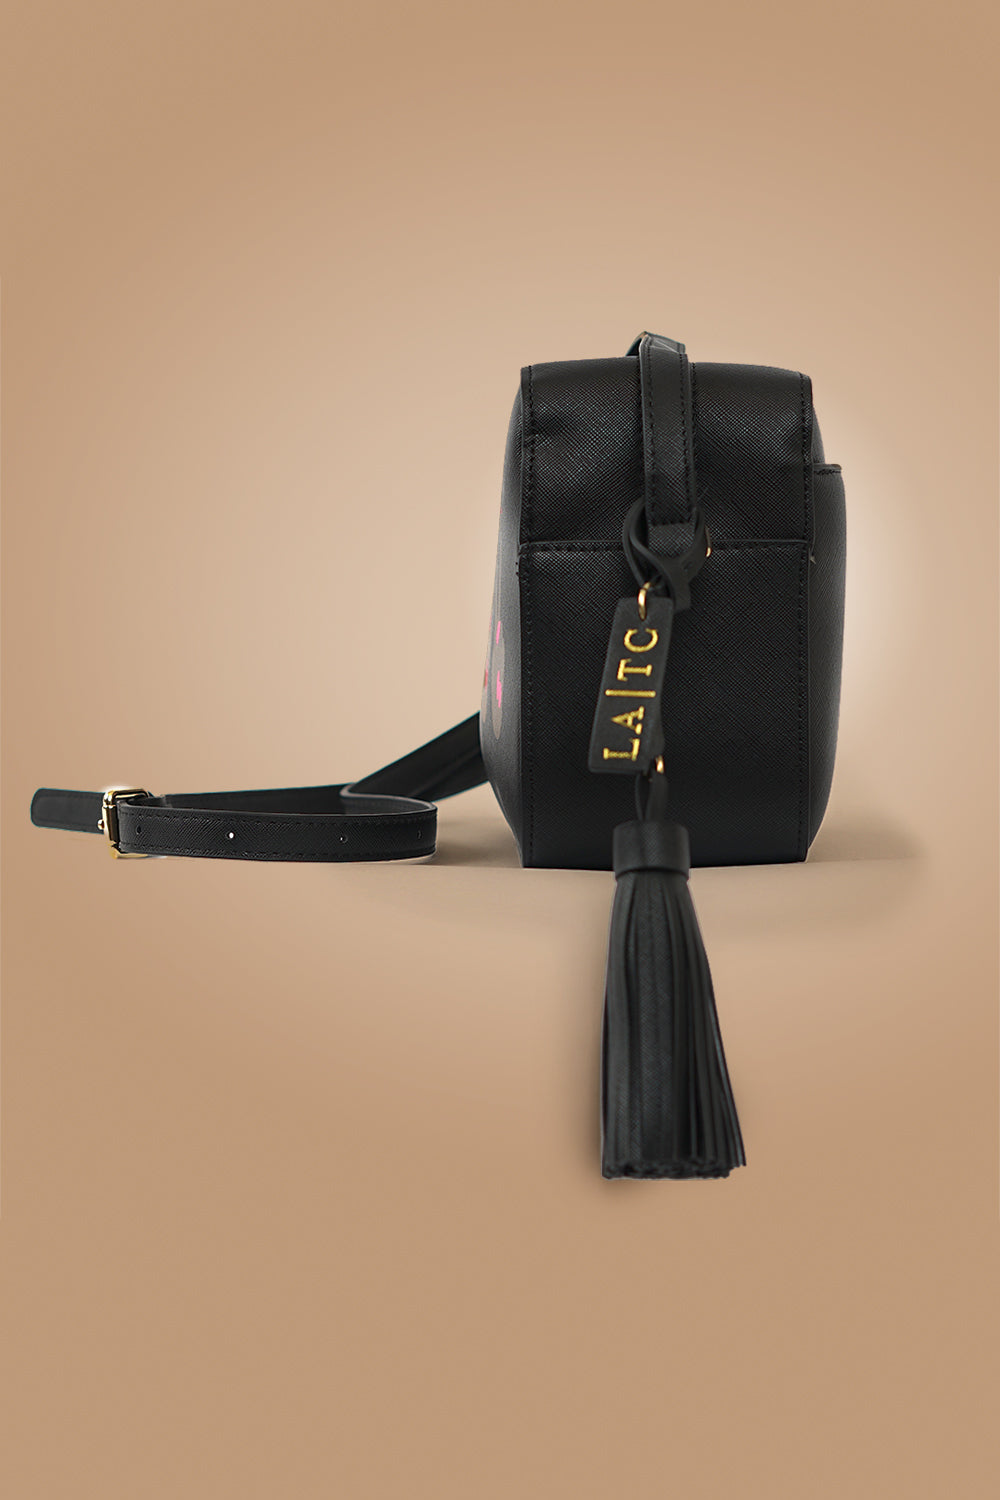 VEGAN CROSSBODY BAG - Fluent French - Black